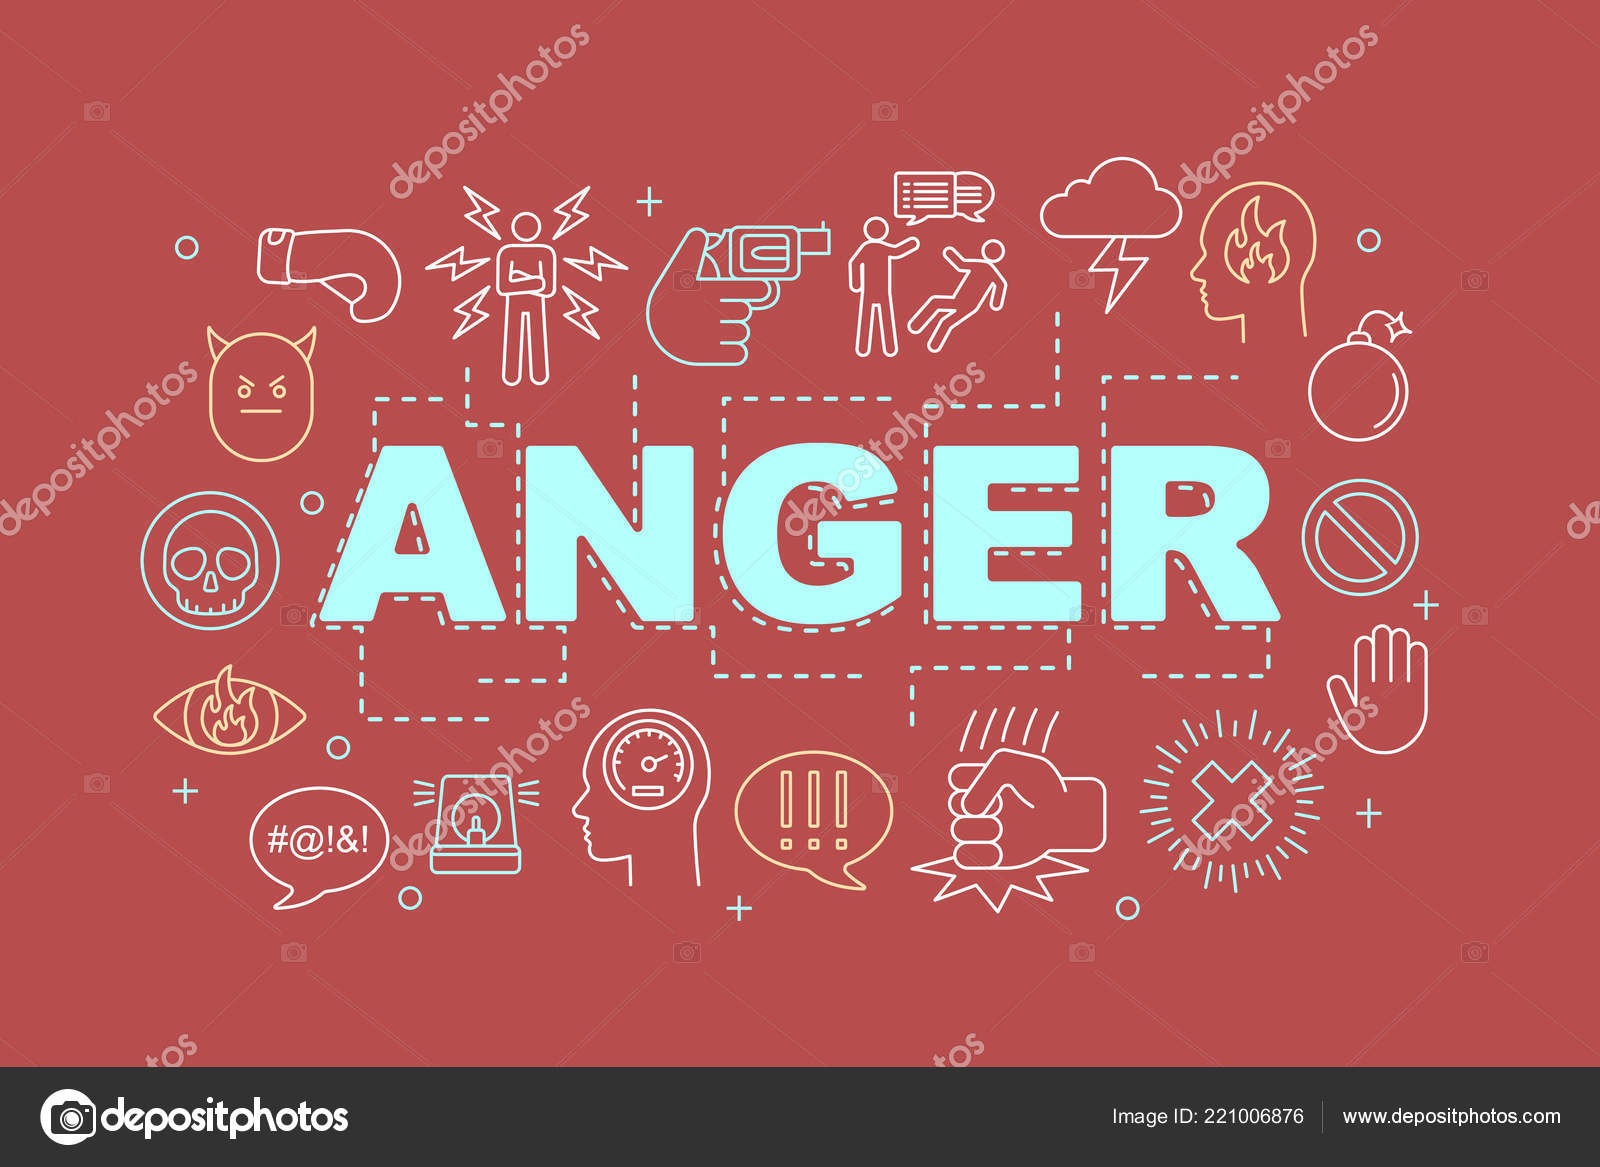 Anger Word Concepts Banner Presentation Website Stress Burnout Irritation Isolated Stock Vector C Bsd 221006876